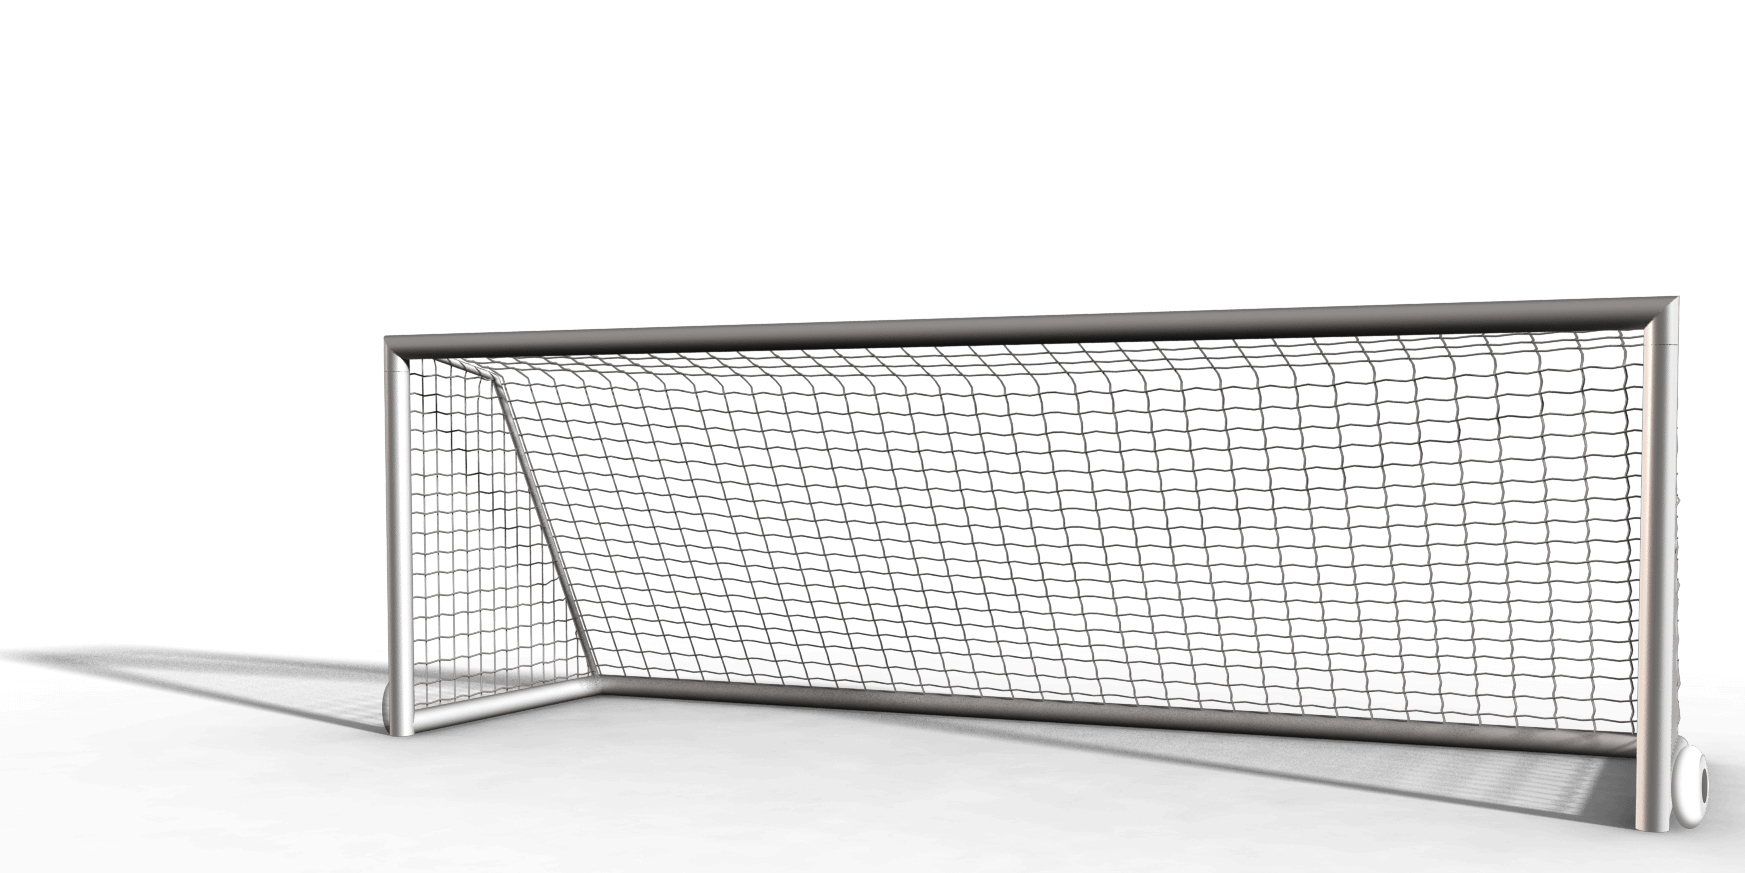 Football goal PNG images free download.